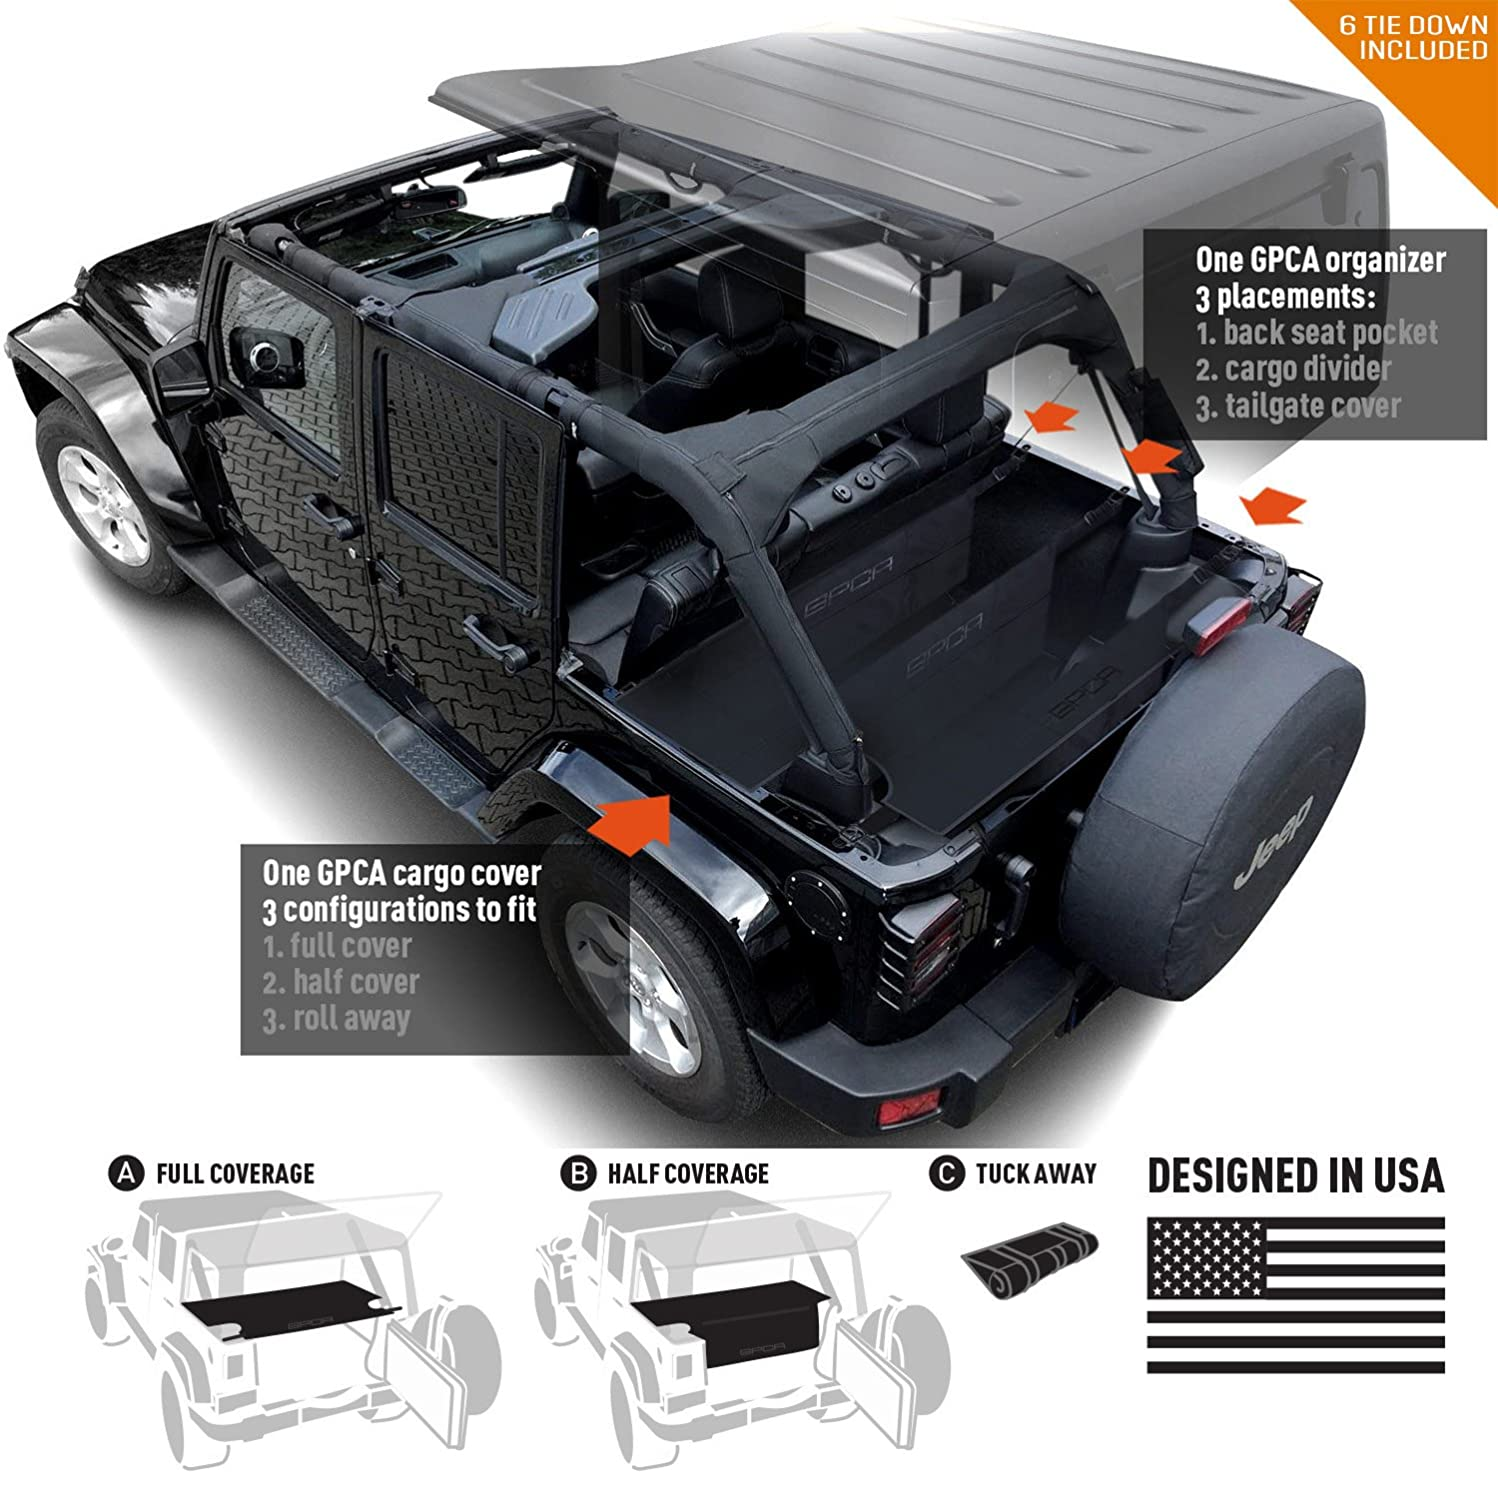 GPCA Jeep Wrangler JK 4DR Freedom Pack LITE - Cargo Cover LITE and Cargo Organizer Tailgate Cover for Sport/Sahara/Freedom/Rubicon 2007-2018 Models